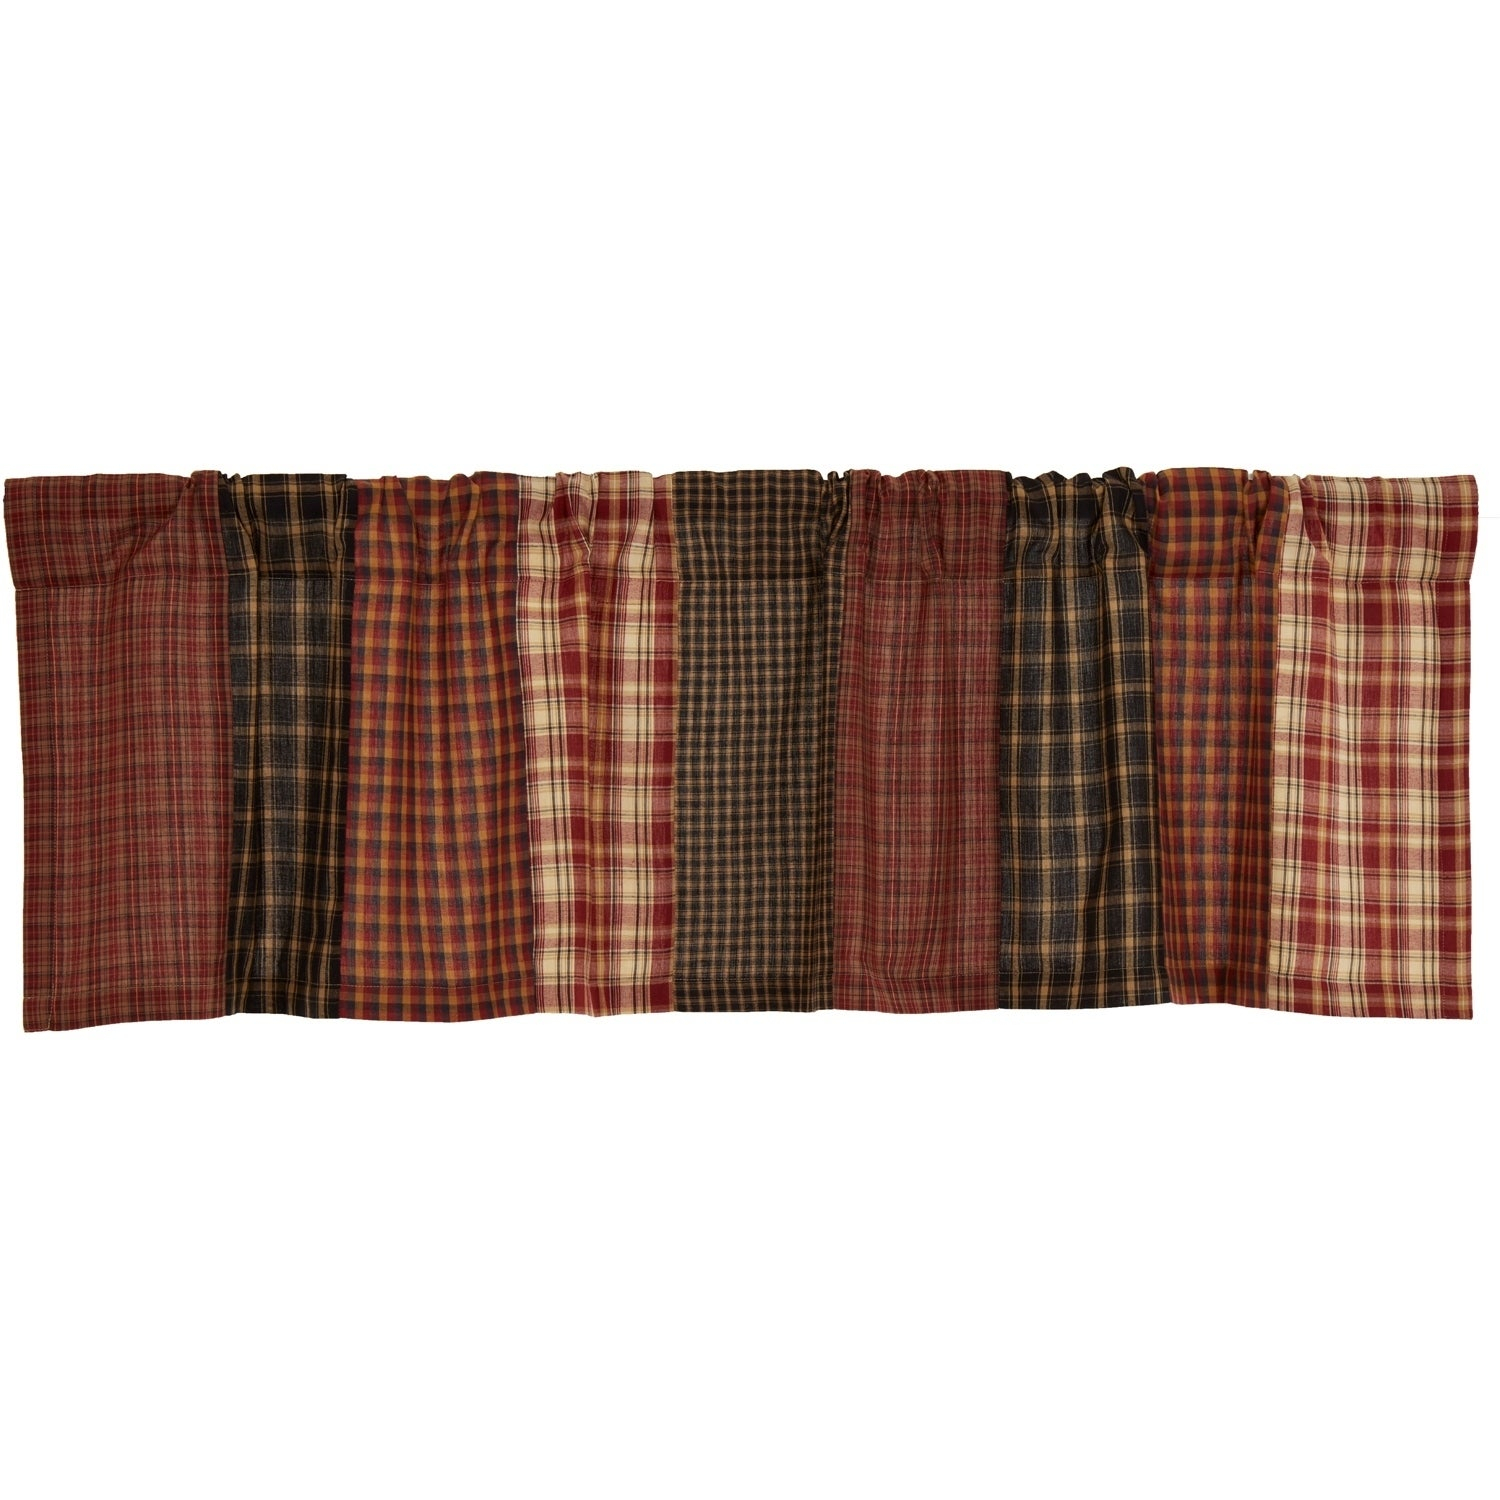 Red Rustic Kitchen Curtains Vhc Beckham Patchwork Valance Rod Pocket Cotton With Regard To Red Rustic Kitchen Curtains (Gallery 12 of 20)